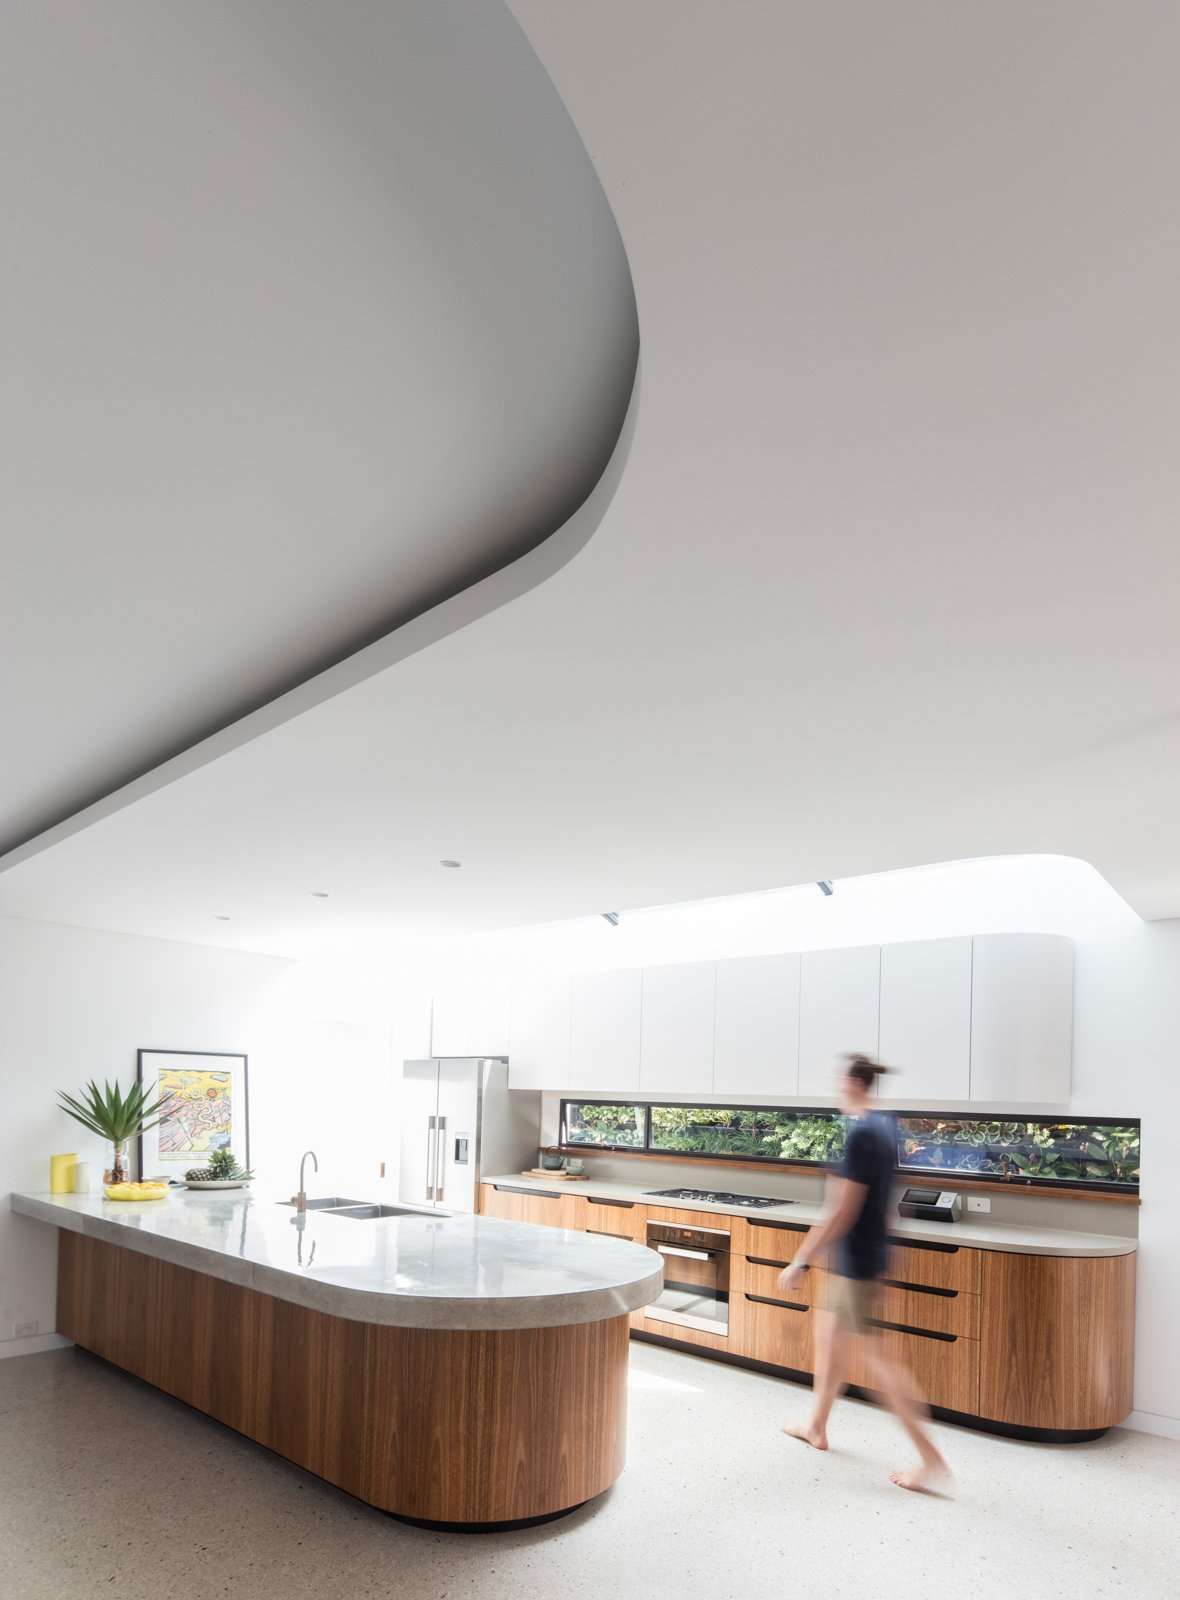 Tagged: Kitchen, Refrigerator, Cooktops, Drop In Sink, Range, and Wall Oven. A Heritage Art Deco House in Australia Gets a Modern Update - Photo 9 of 12